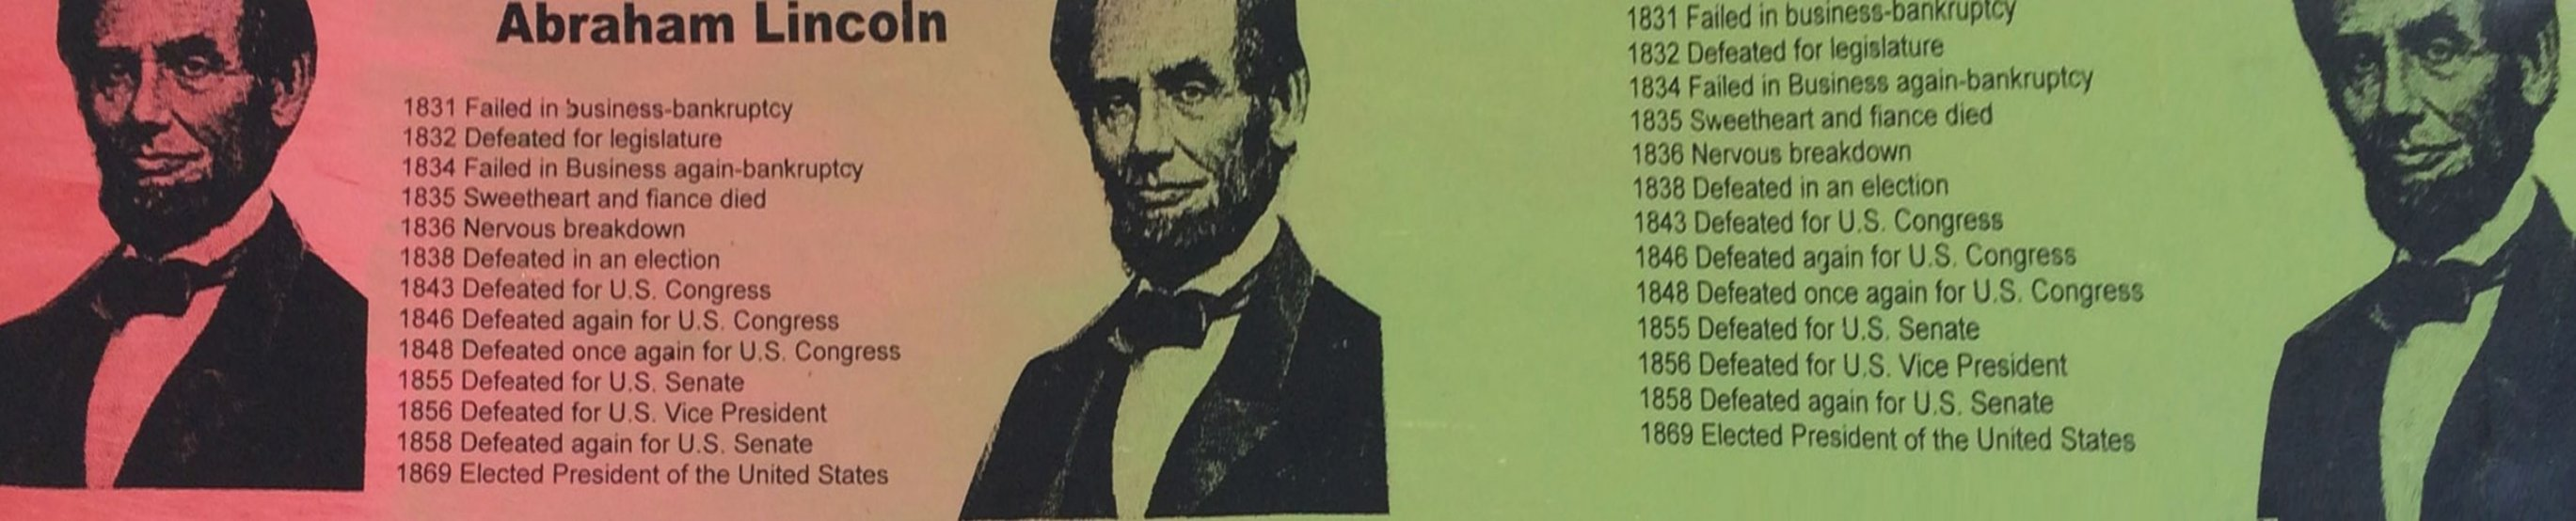 Abe Lincoln Portrait of an Achiever PP Limited Edition Print by Steve Kaufman